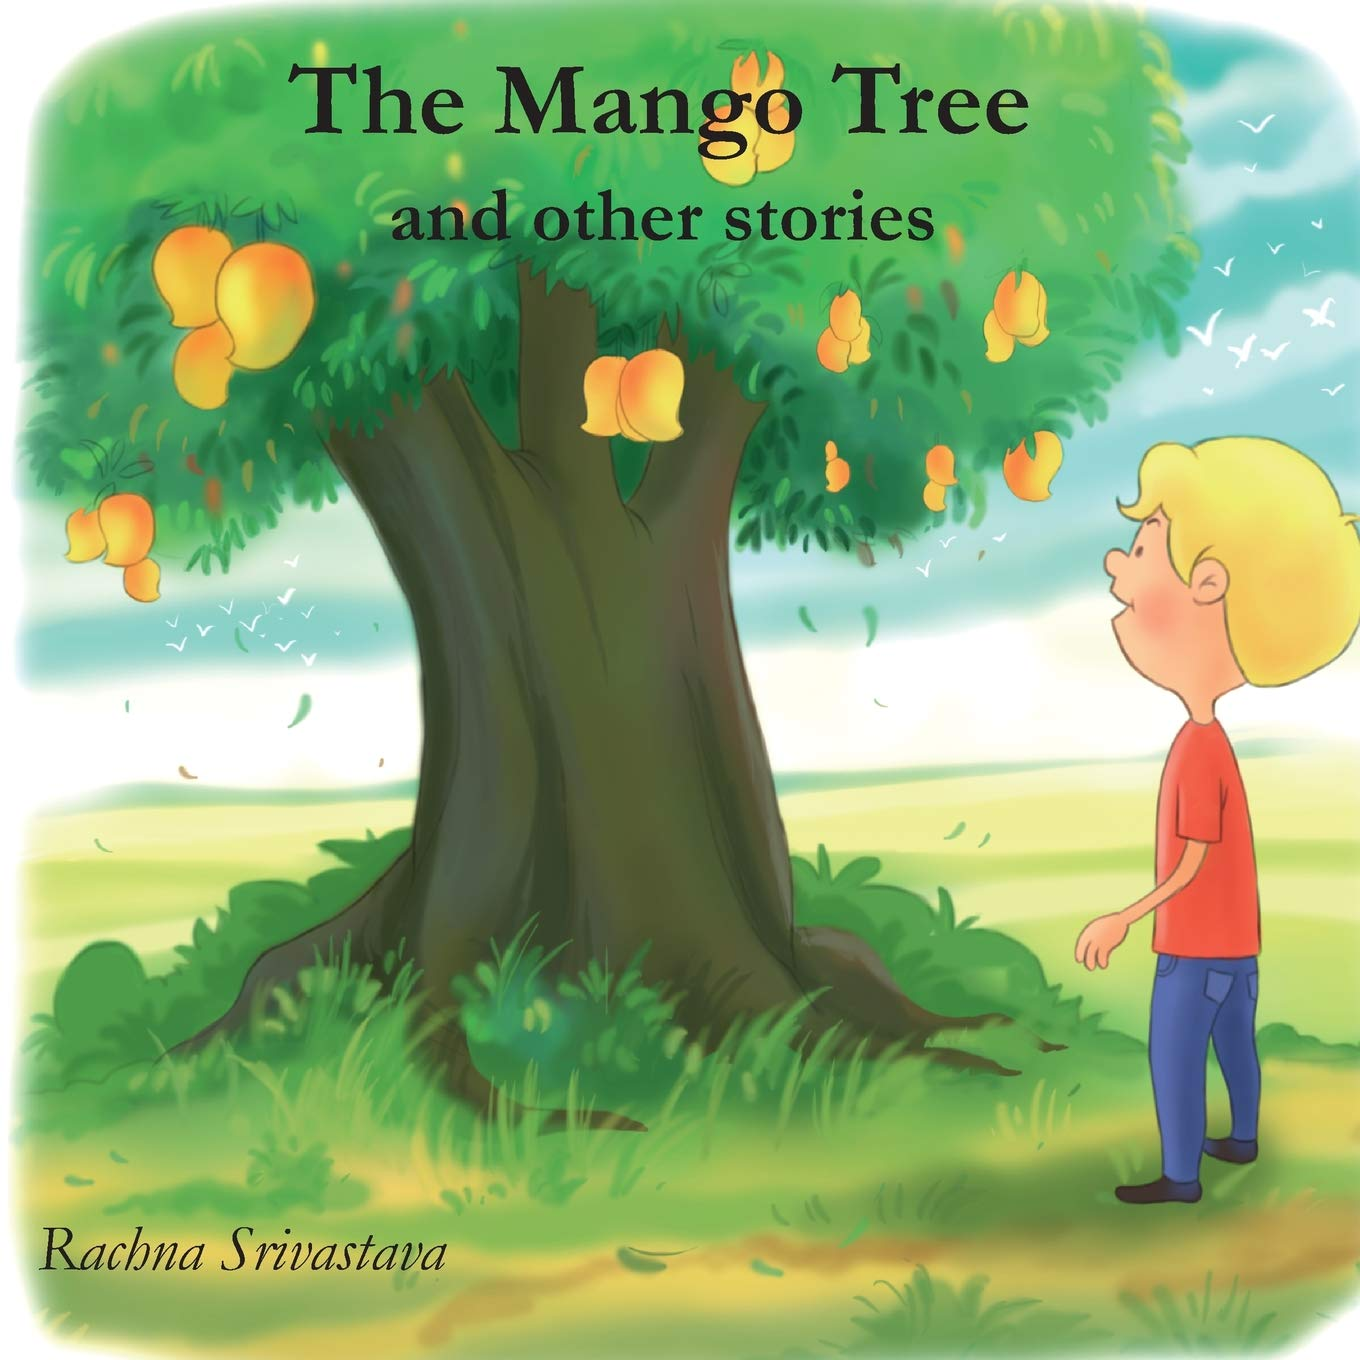 The Mango Tree And Other Stories Srivastava Rachna 9780988122444 Amazon Com Books Check out our mango tree selection for the very best in unique or custom, handmade pieces from our craft supplies & tools shops. the mango tree and other stories